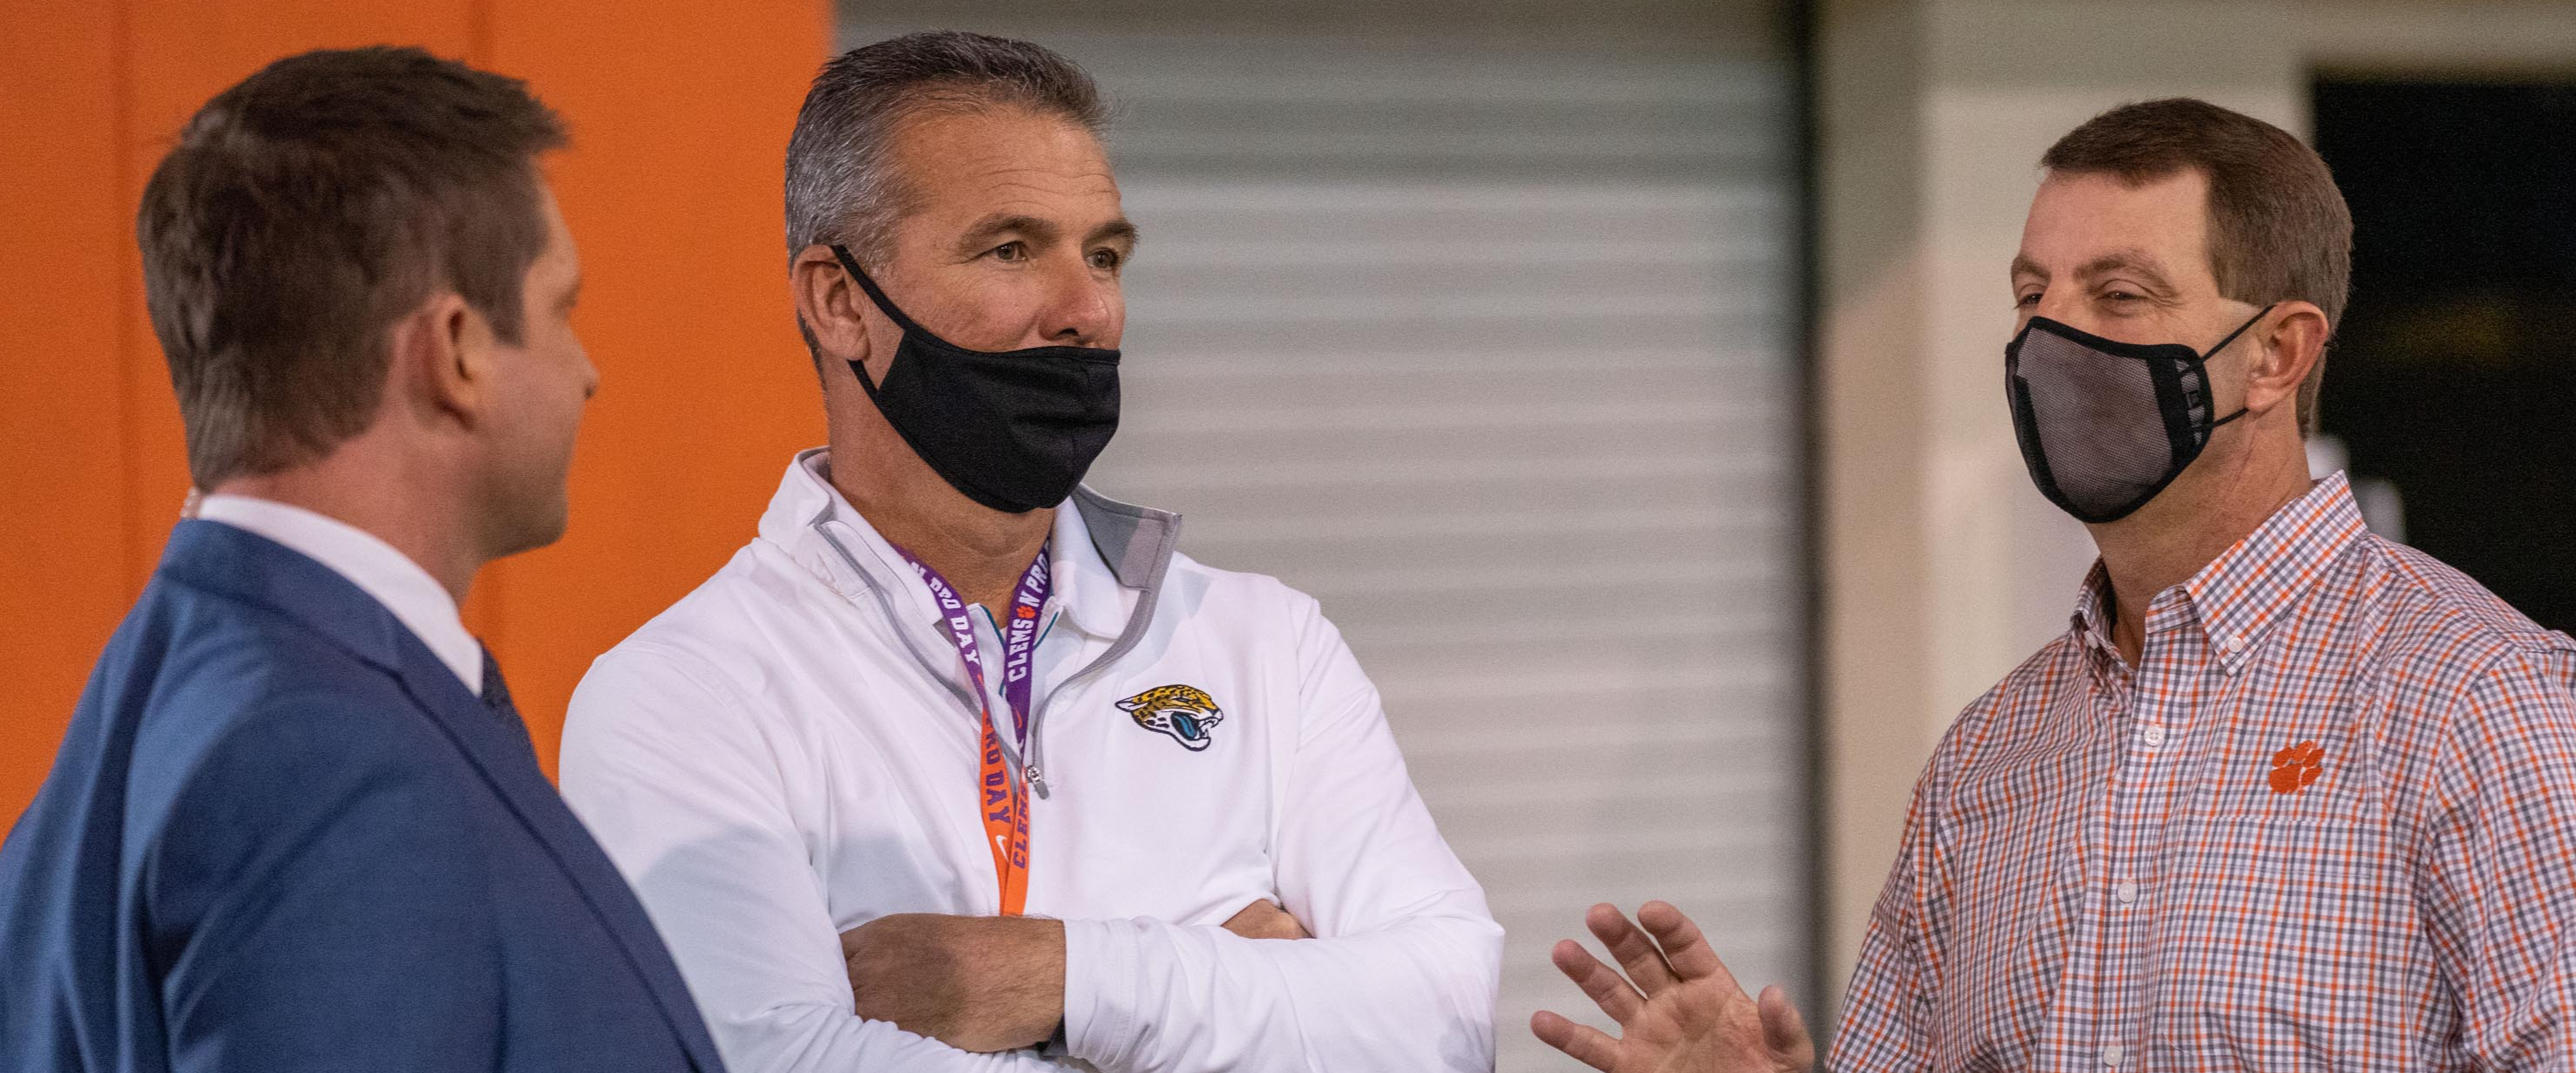 Is Urban Meyer really ready for the NFL?